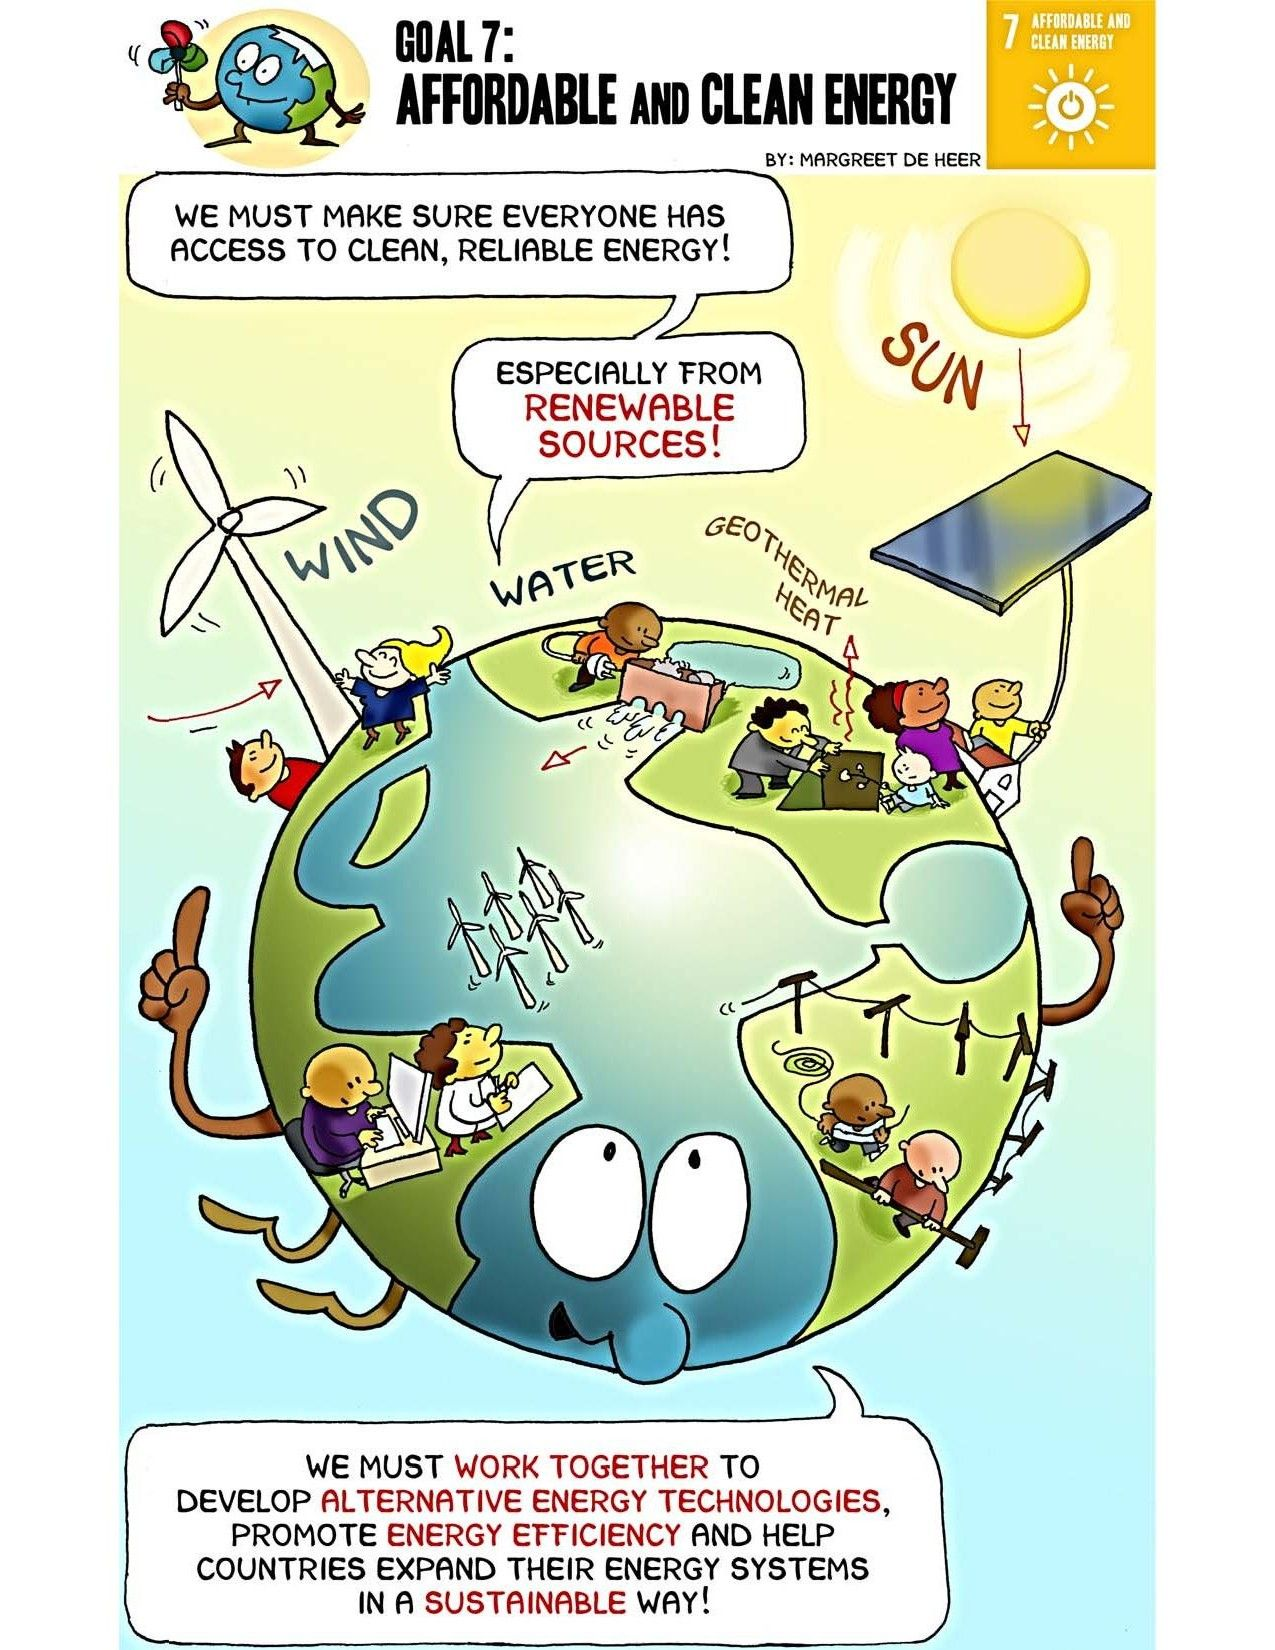 Off Grid Solar And The Path To Universal Access Un Sustainable Development Goals Sustainable Development Projects Sustainable Development Goals